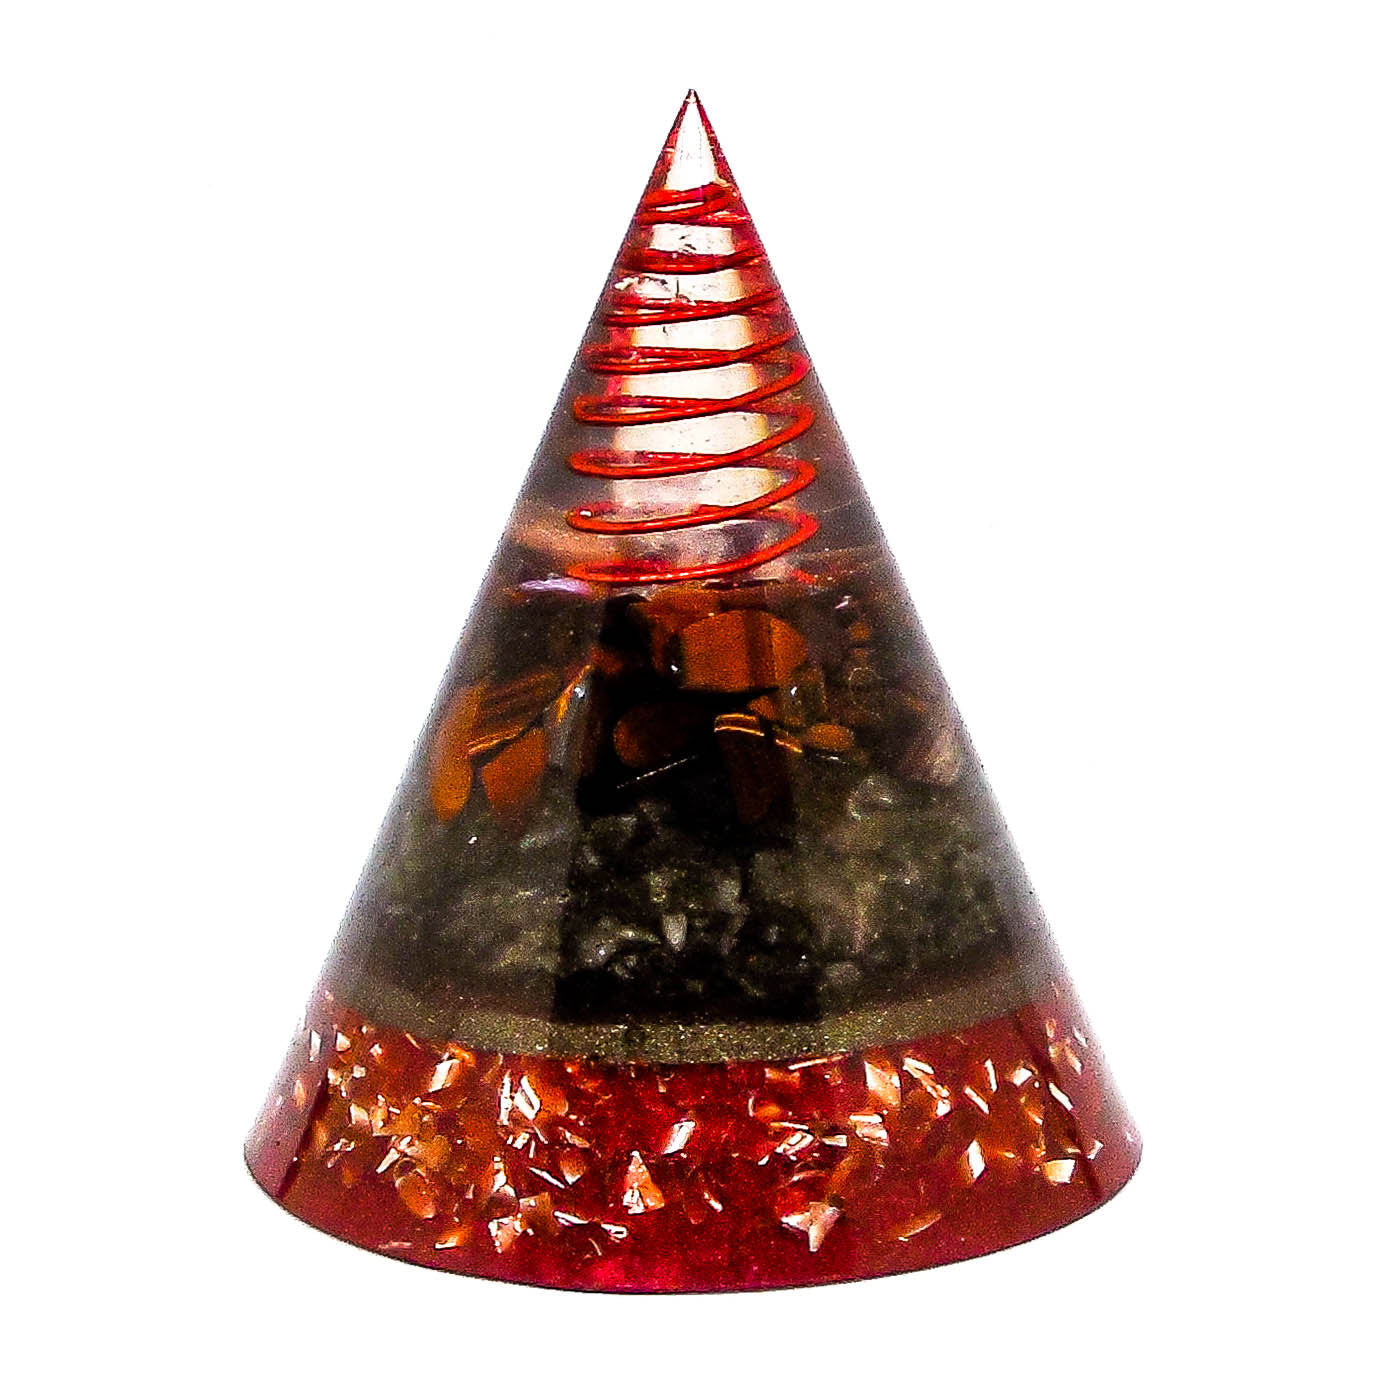 Harmonic Star Resonator - Orgone Transmuter Cone (Red Tiger Eye + Smokey Quartz) - Star Gate